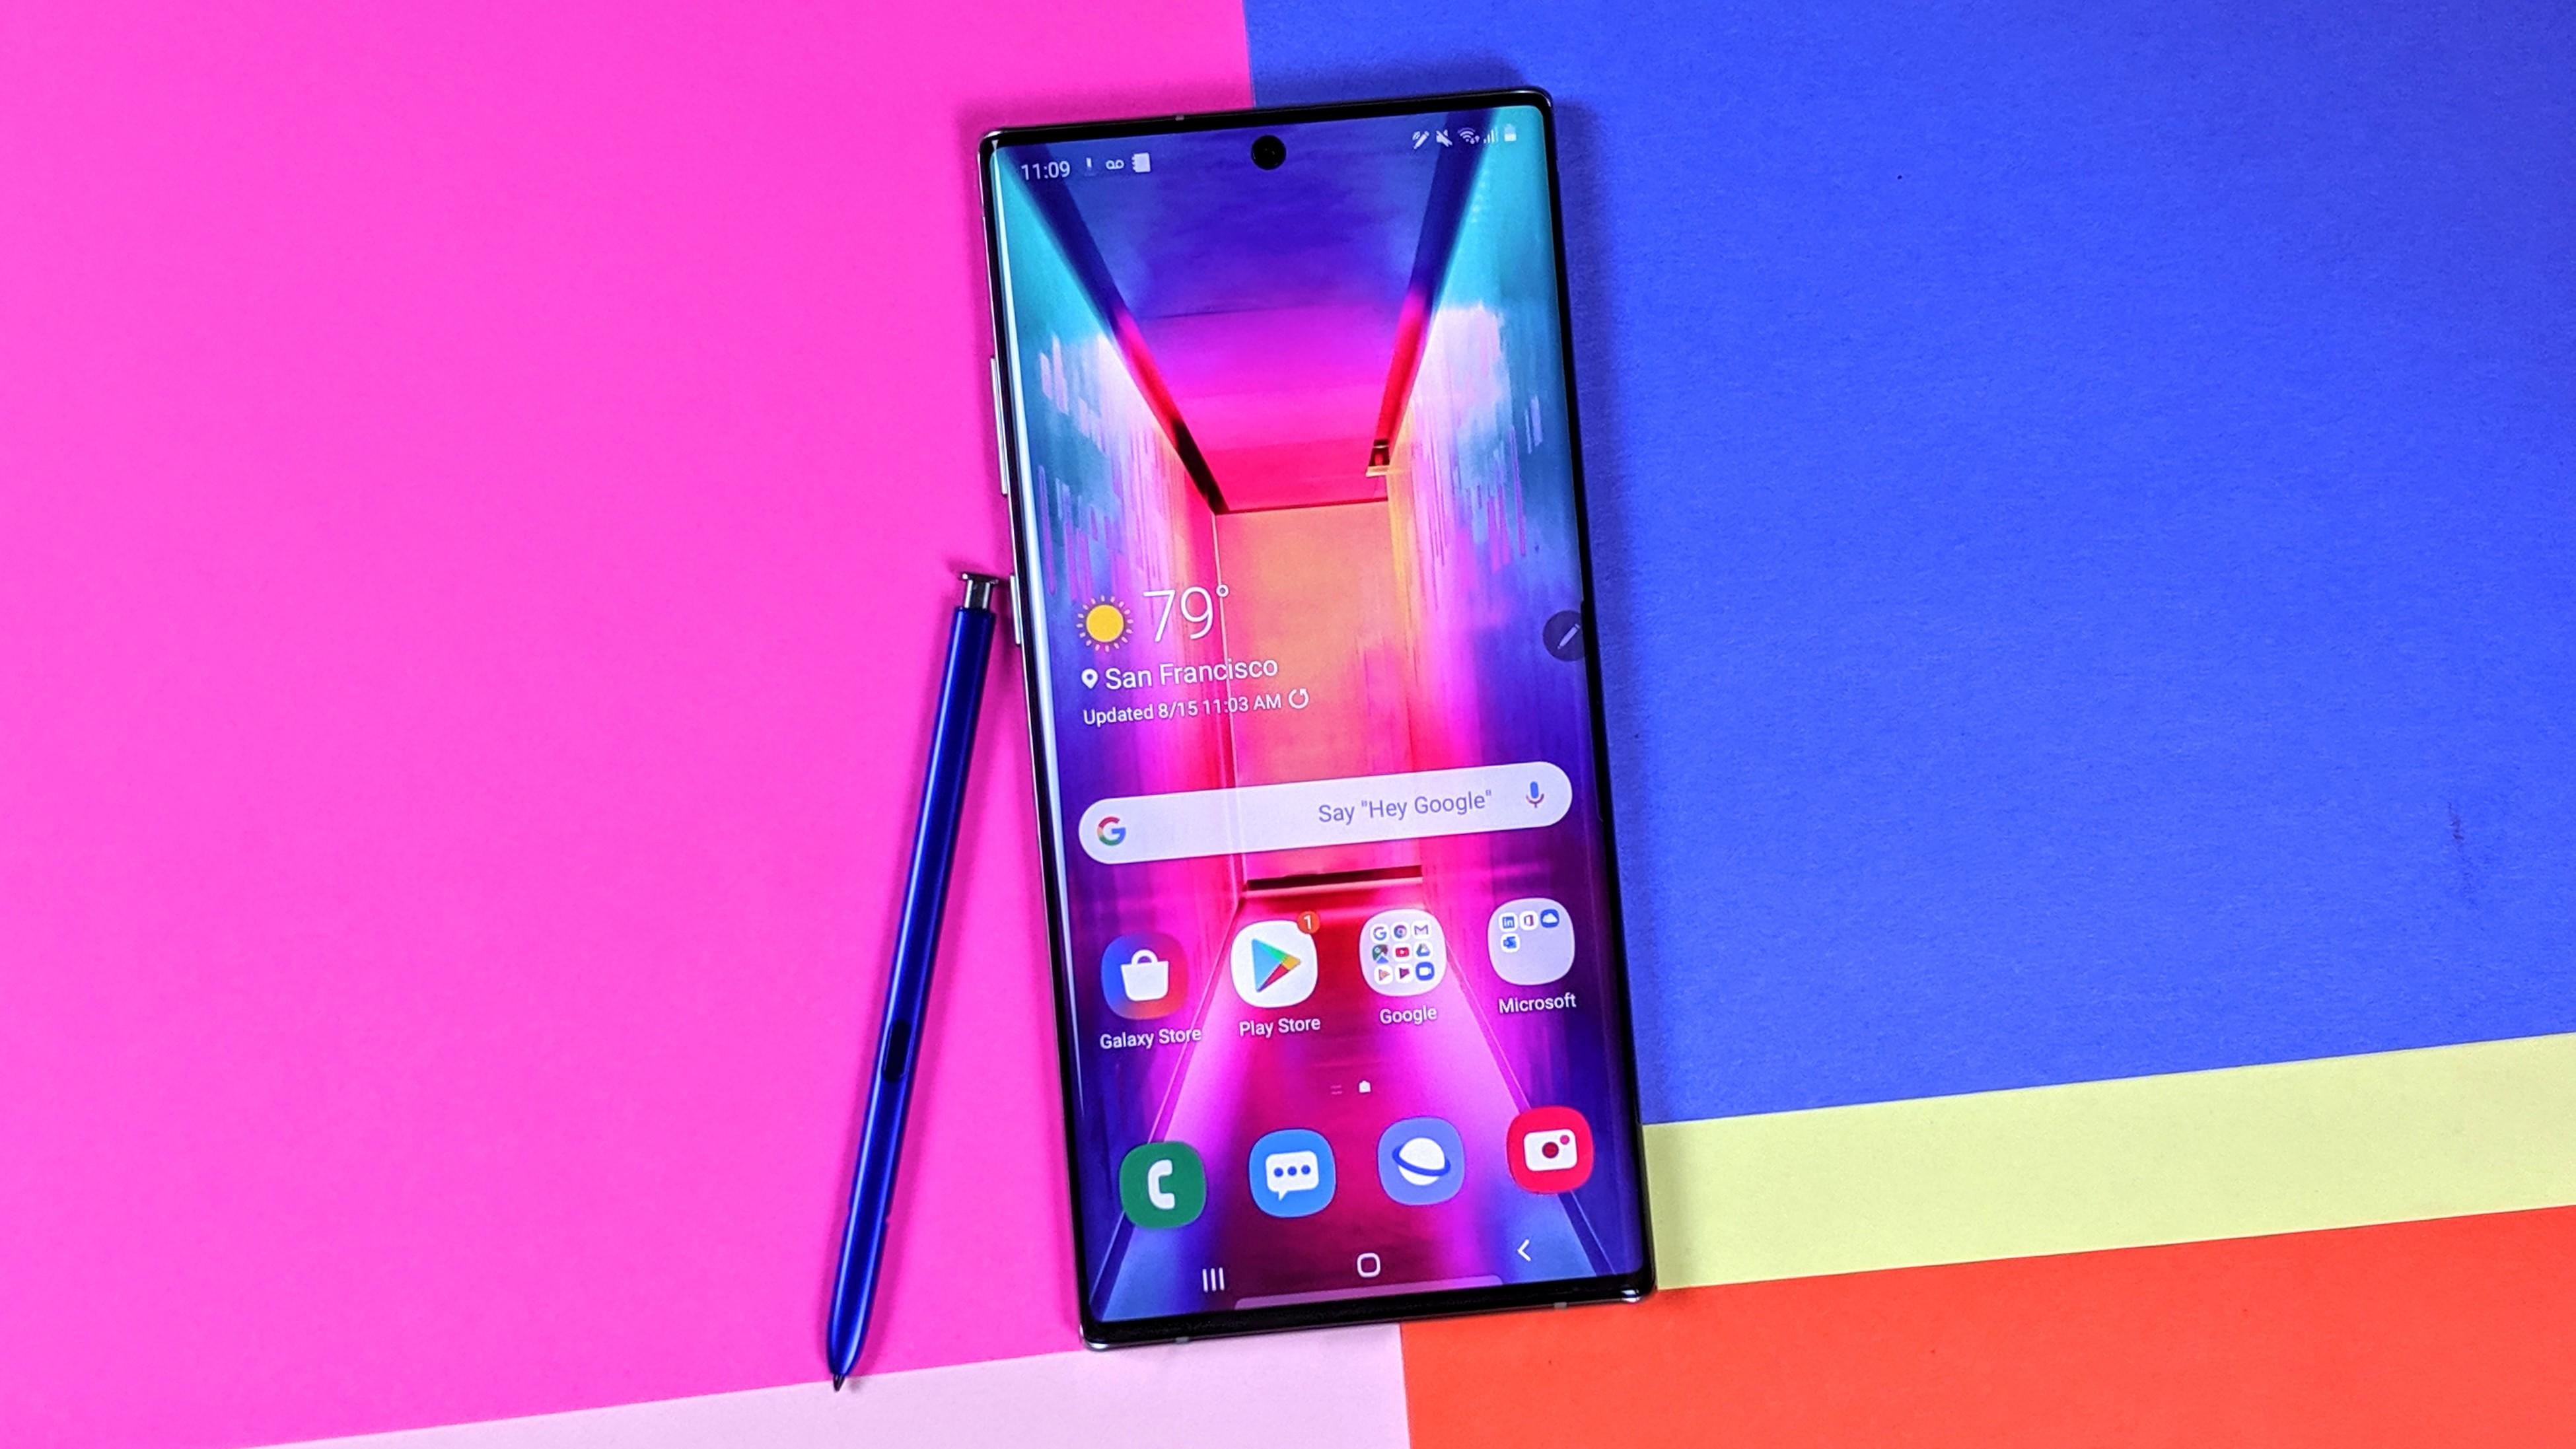 New Marvel Avengers Note 10 Wallpapers Are Here And Installing Them Is Easy Cnet